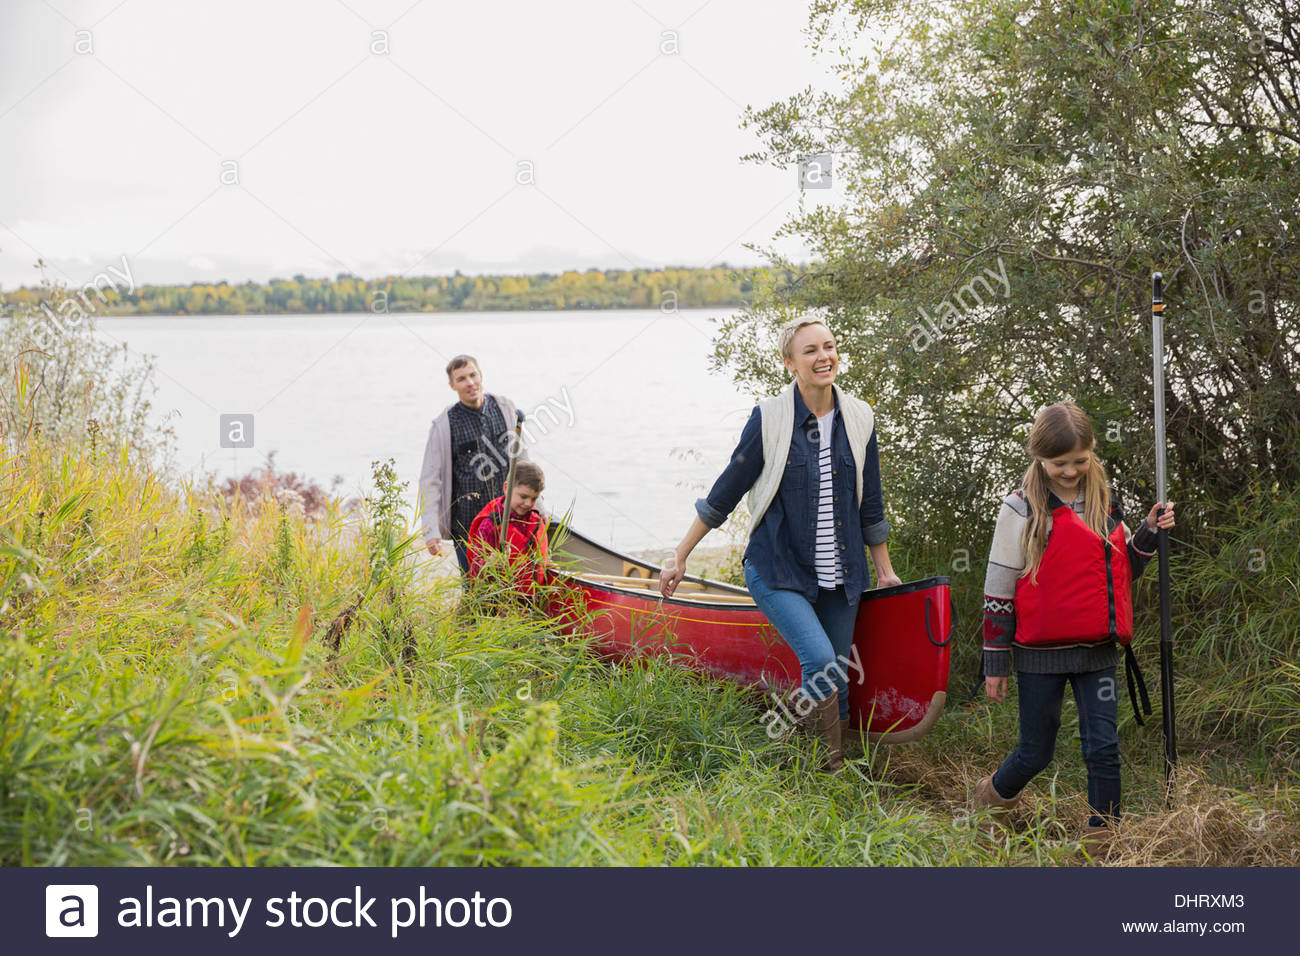 Family carrying canoe by lakeshore - Stock Image